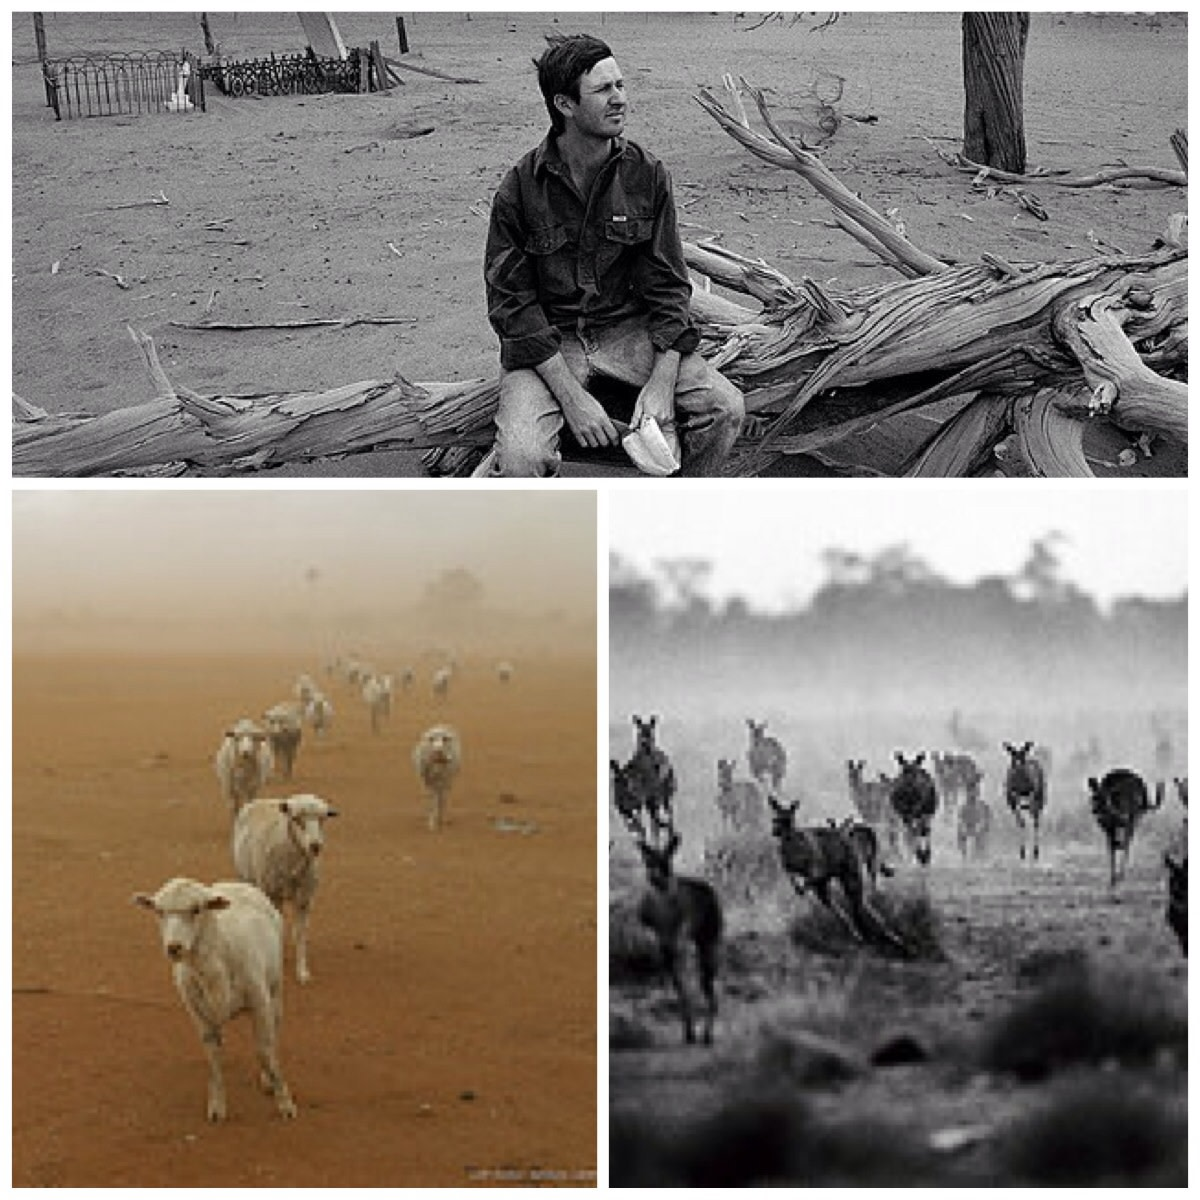 Effects of drought- collage